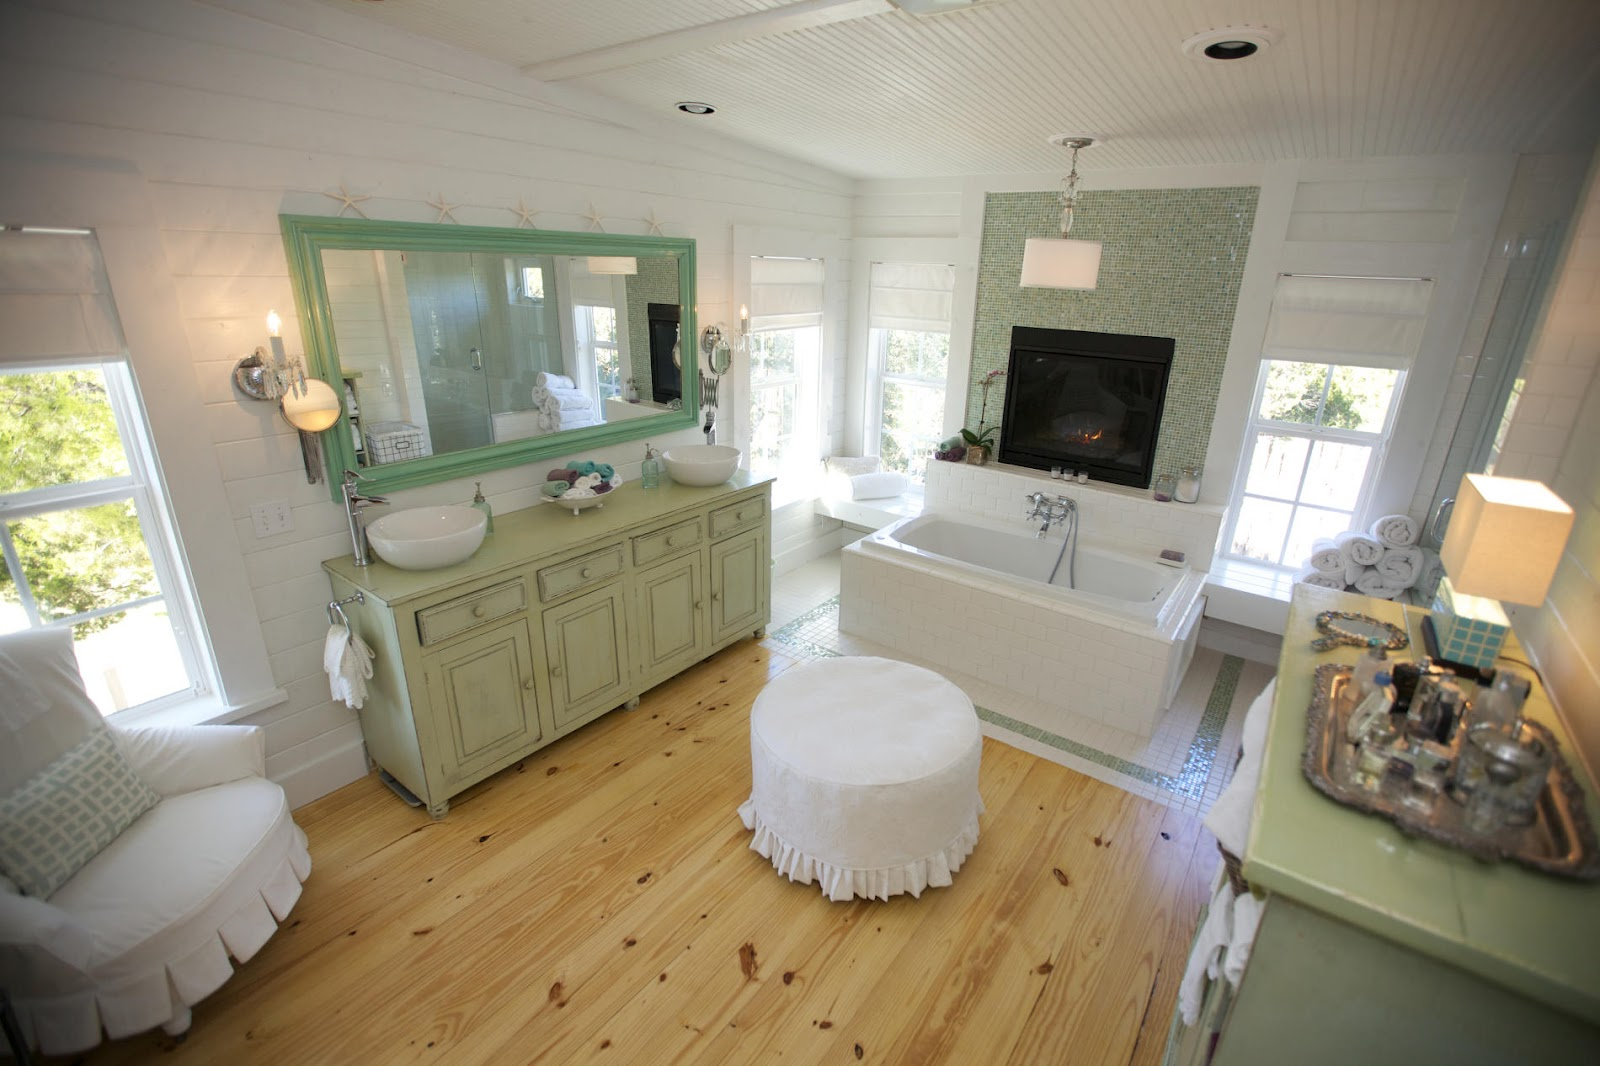 Western Style Bathroom In Green